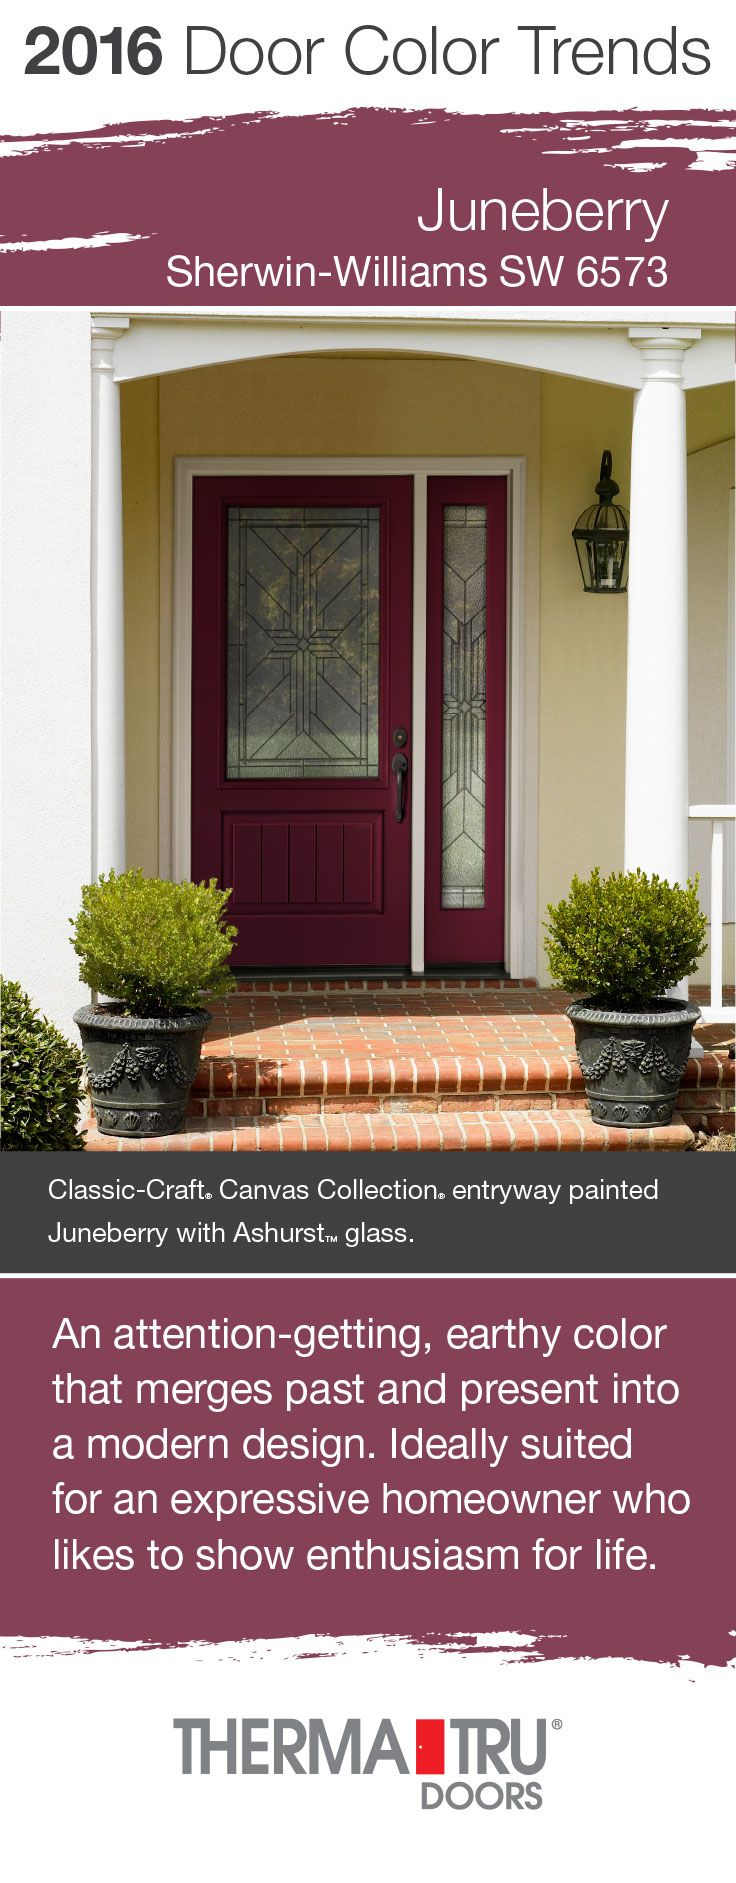 Juneberry By Sherwin Williams One Of The Front Door Color Trends For 2016